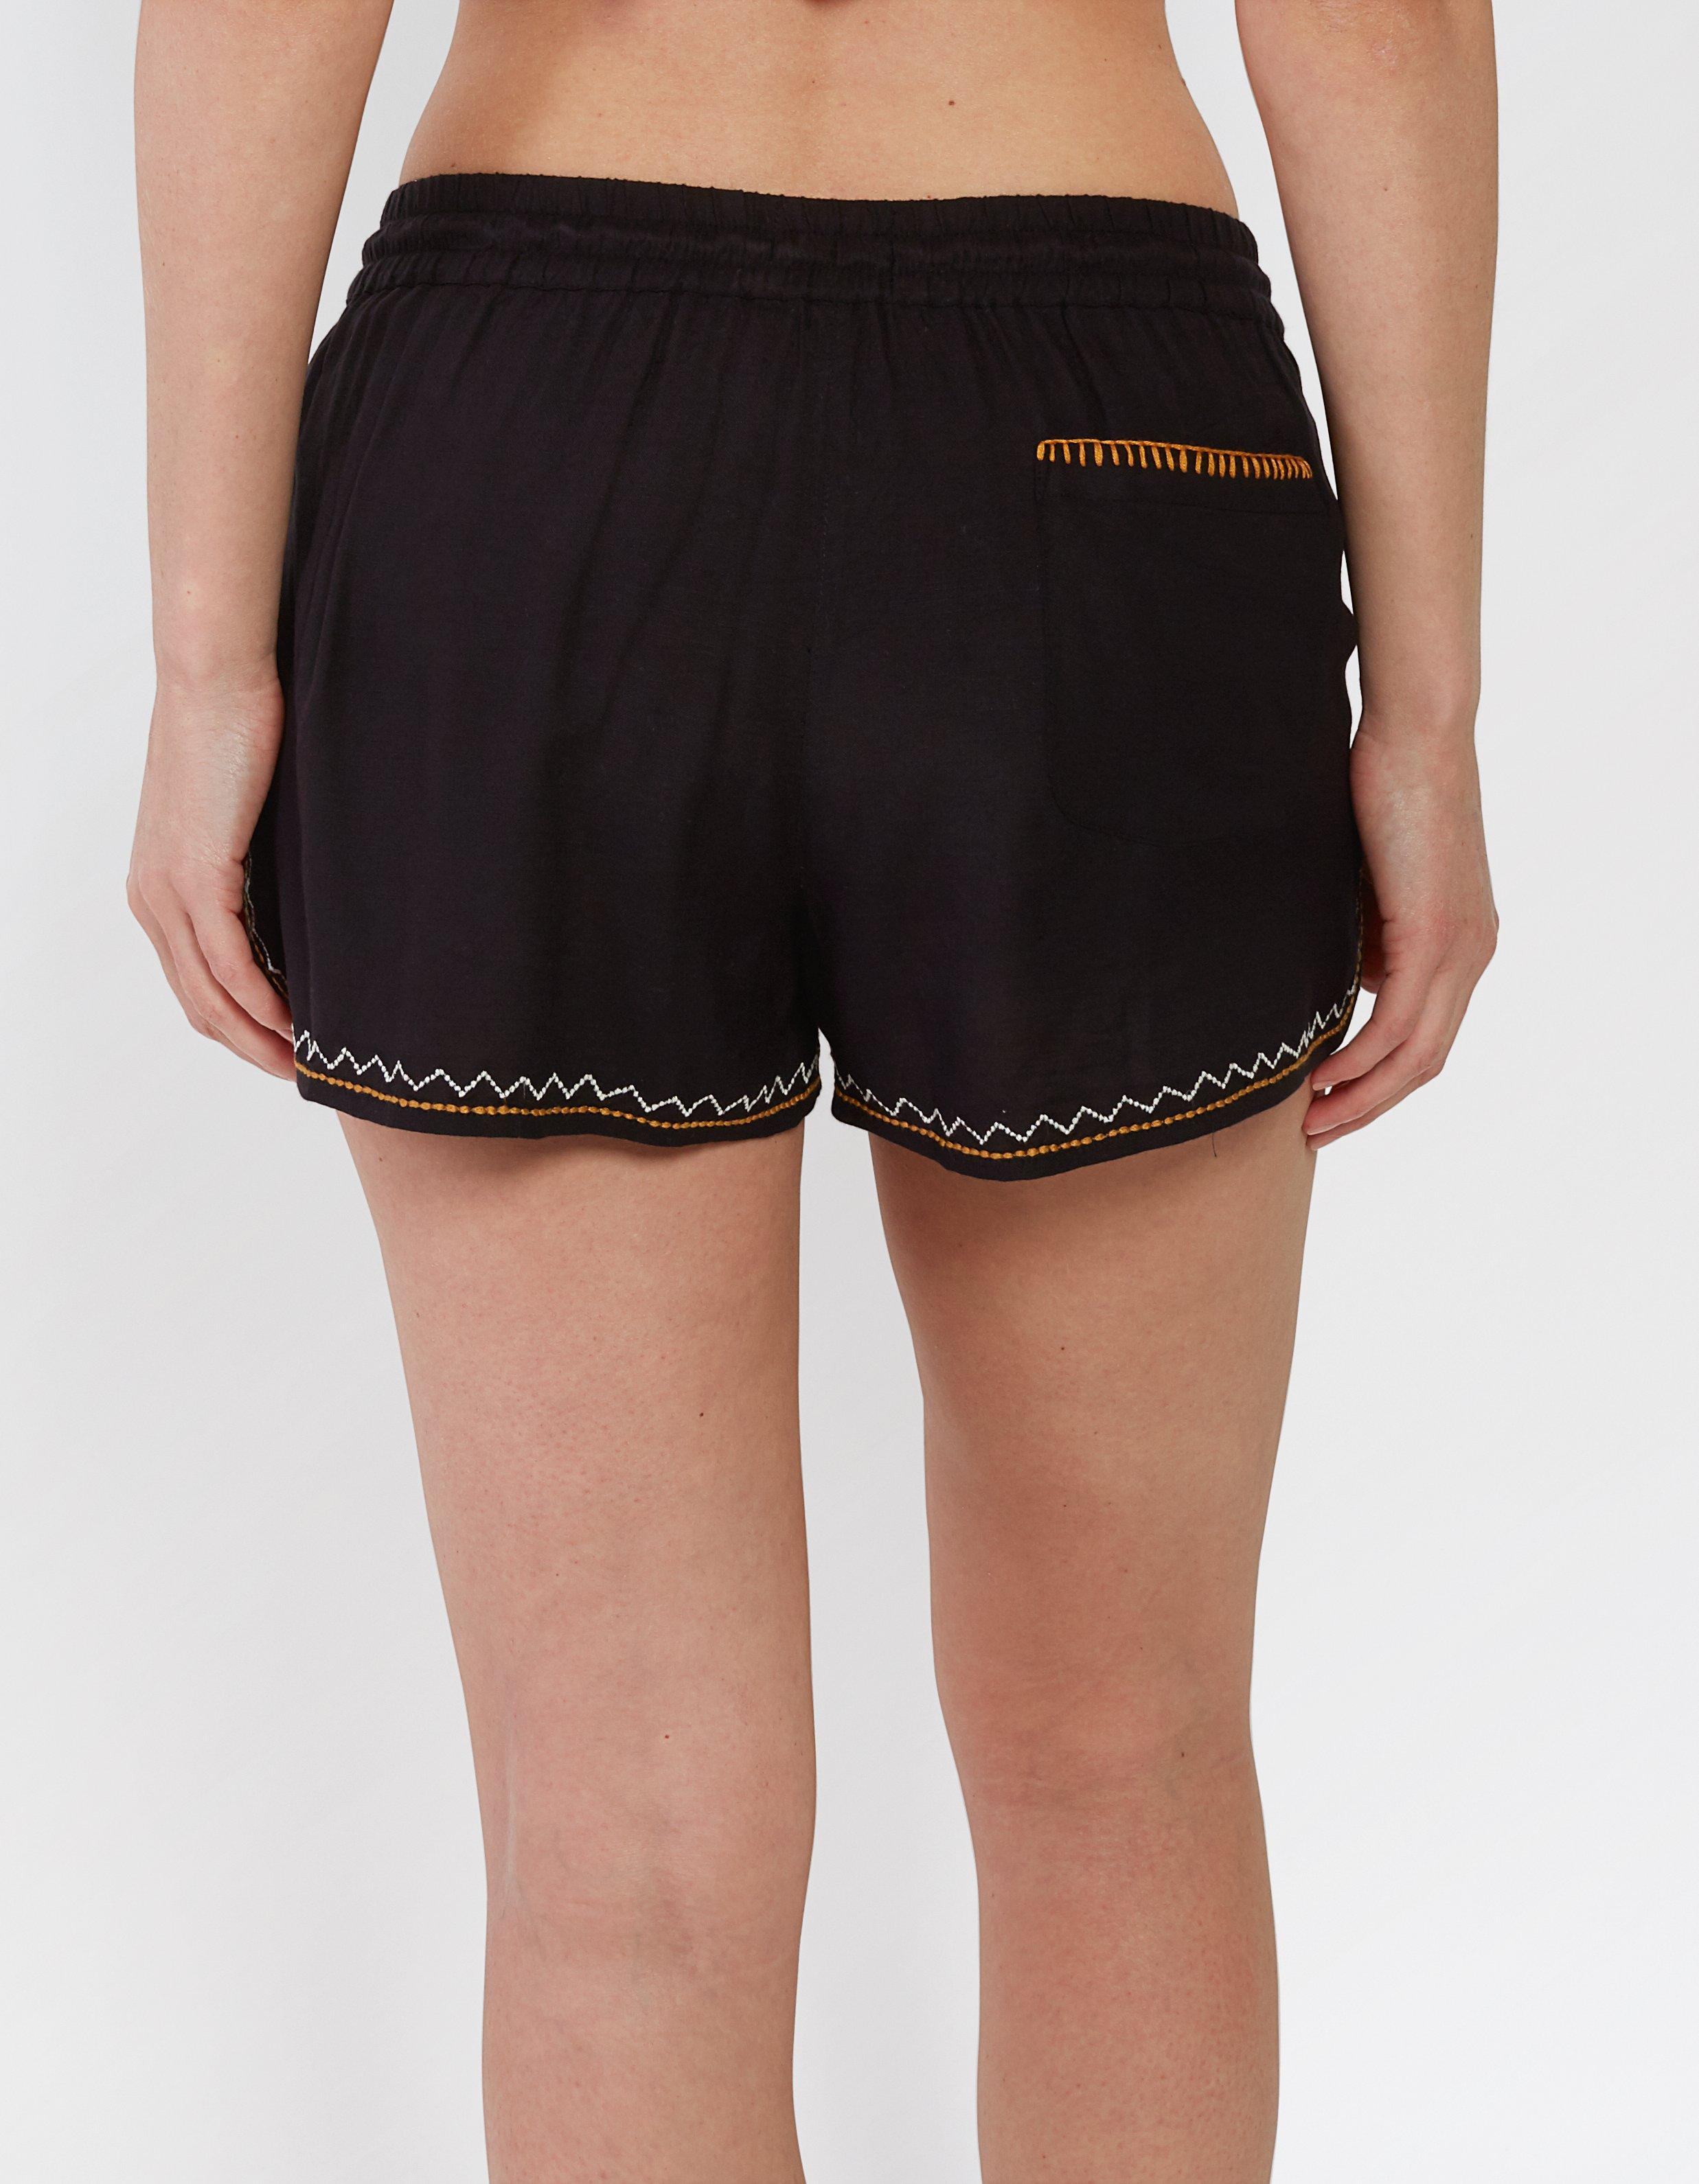 Boscastle Embroidered Shorts